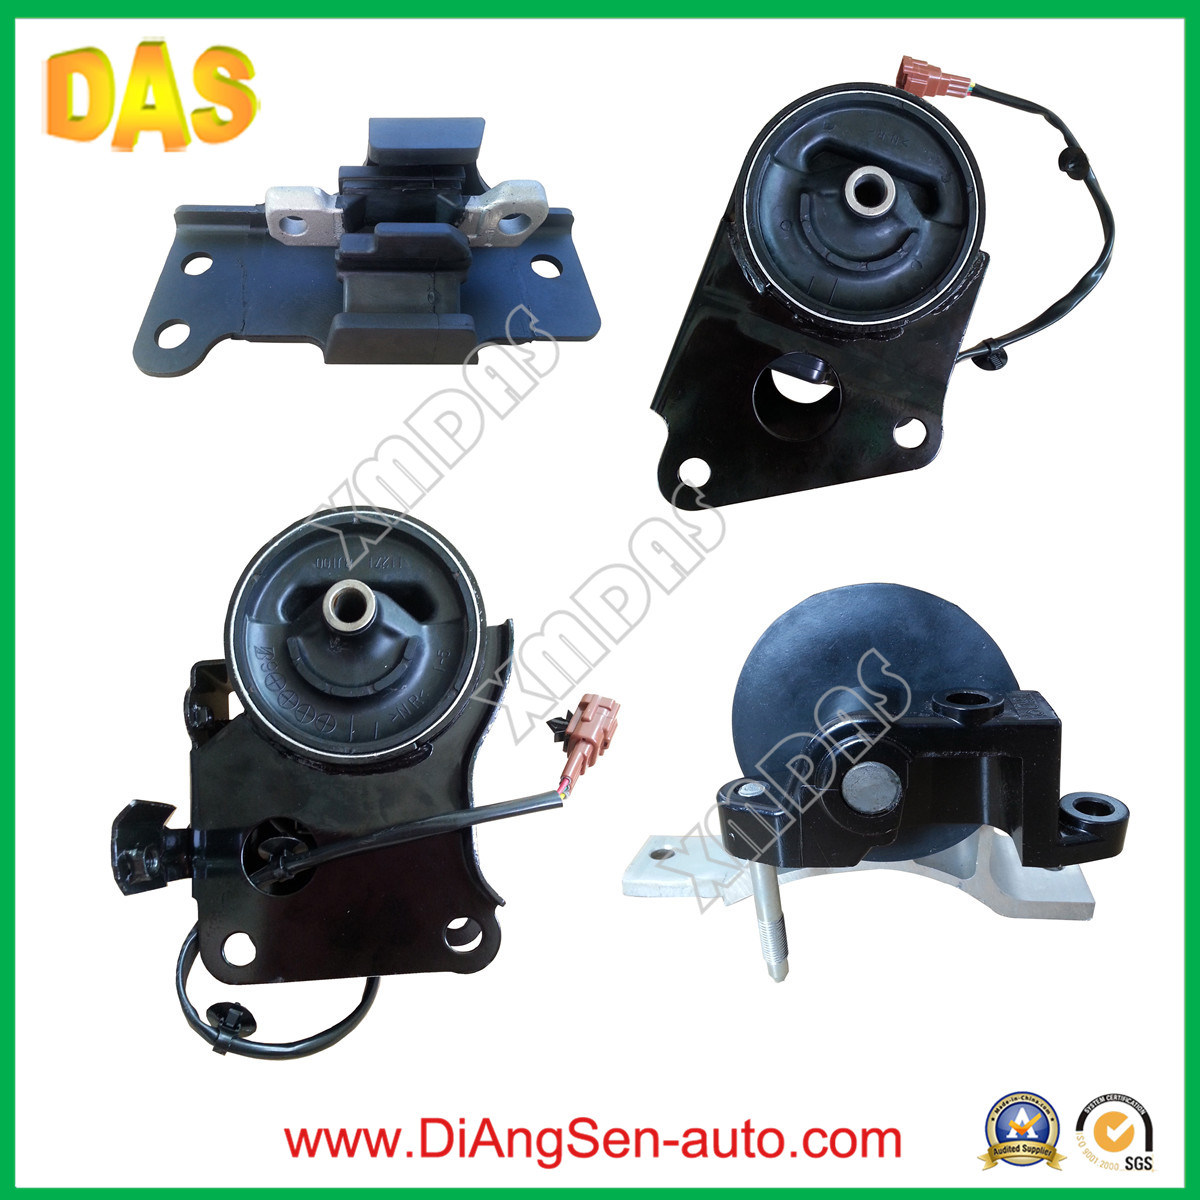 Aftermarket Car Parts - Rubber Engine Motor Mounting for Honda / Toyota / Nissan / Mazda / Mitsubishi / Suzuki / Subaru